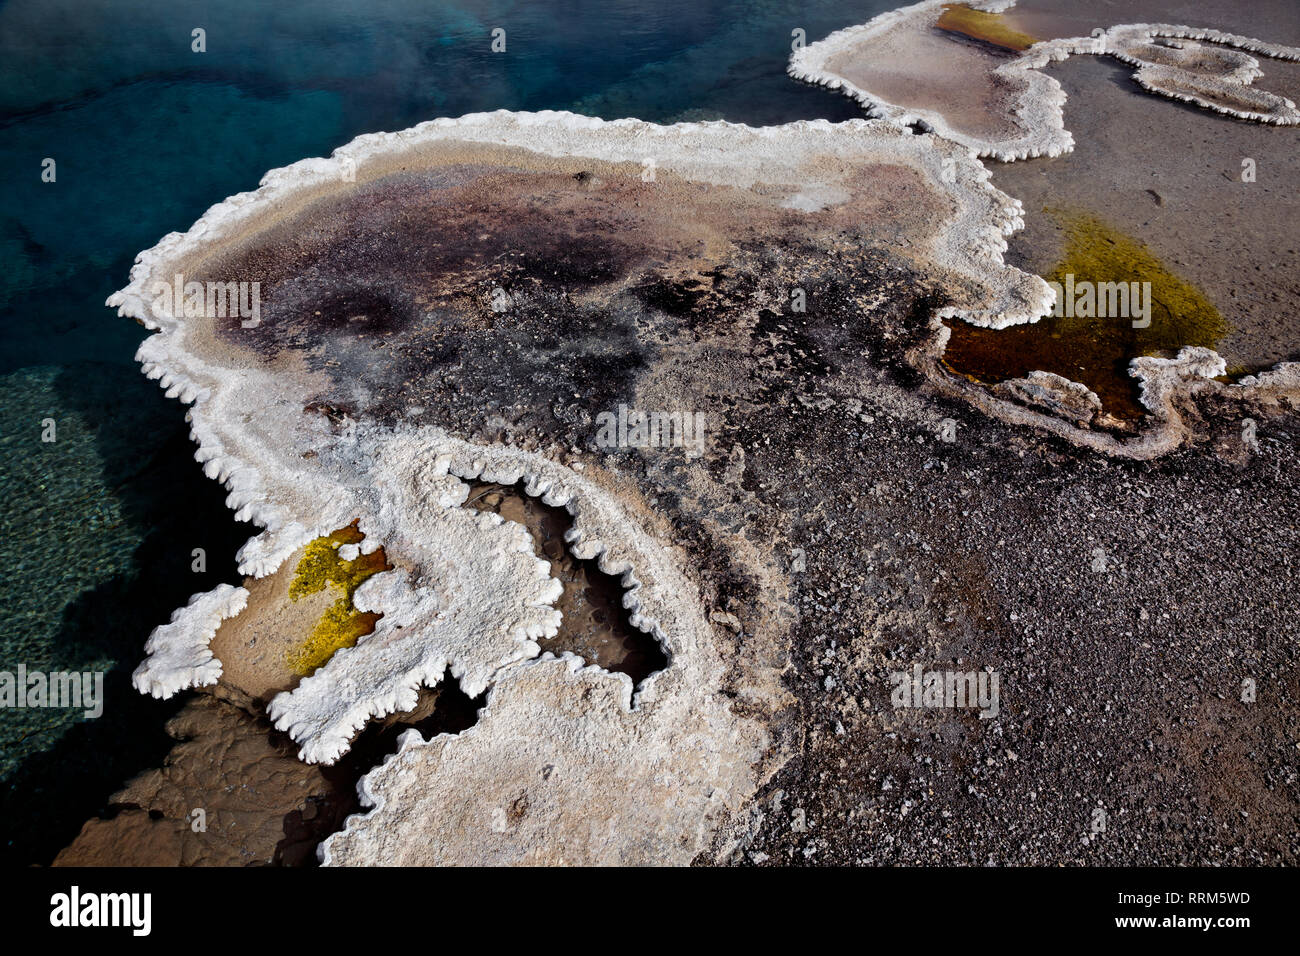 WY03841-00...WYOMING - Columbia Spring with a delicate border of bulbous sinter and cyanobacteria at Heart Lake Geyser Basin in Yellowstone National P - Stock Image